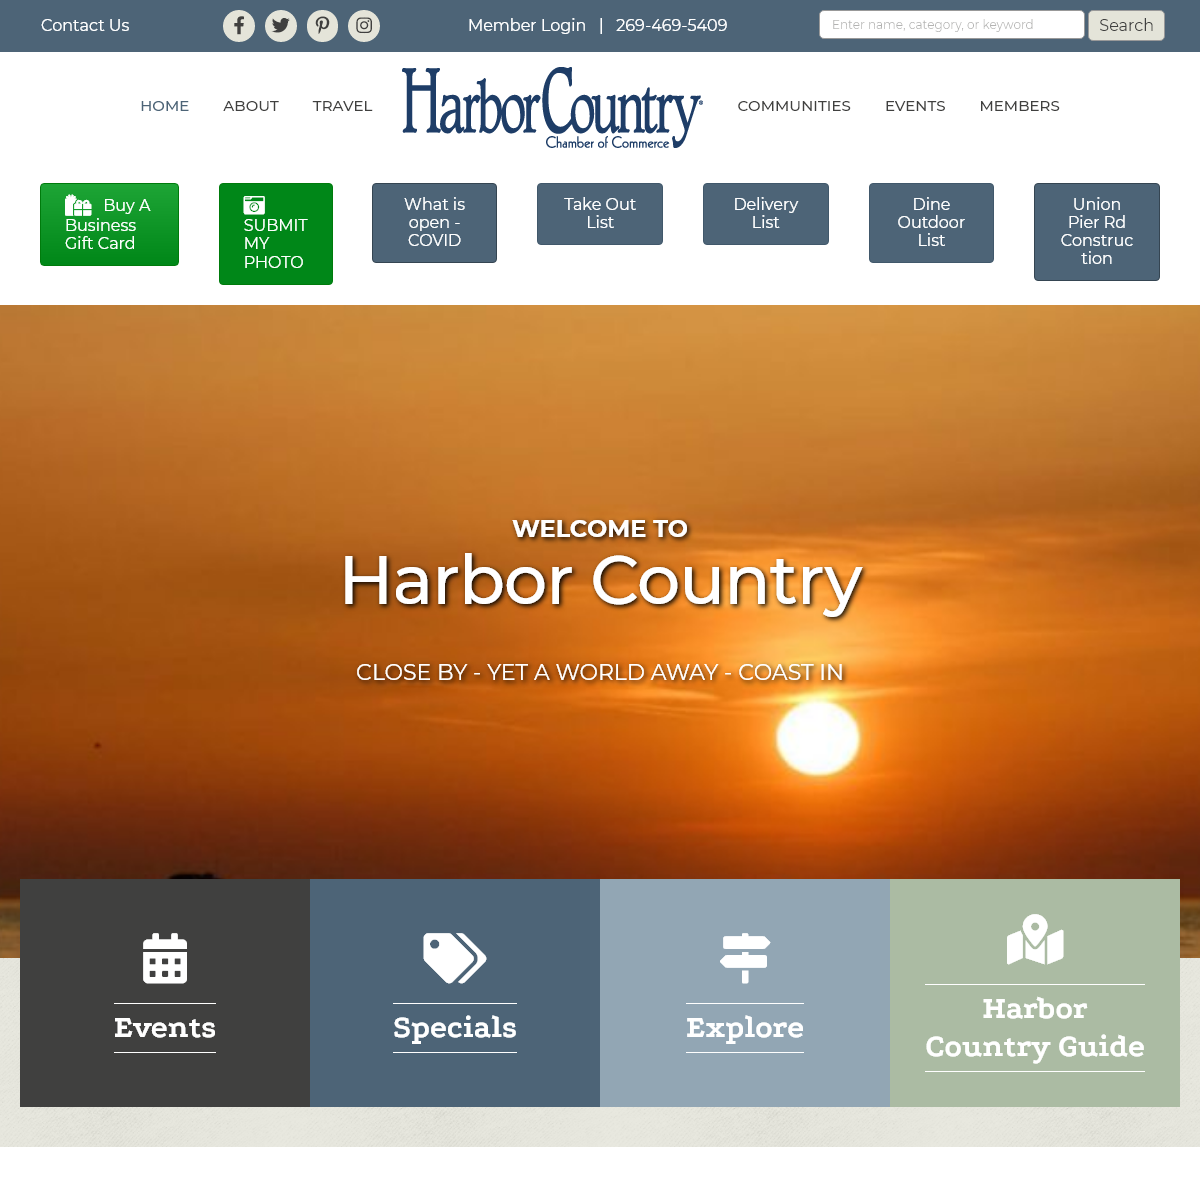 Home - Harbor Country Chamber of Commerce - MI